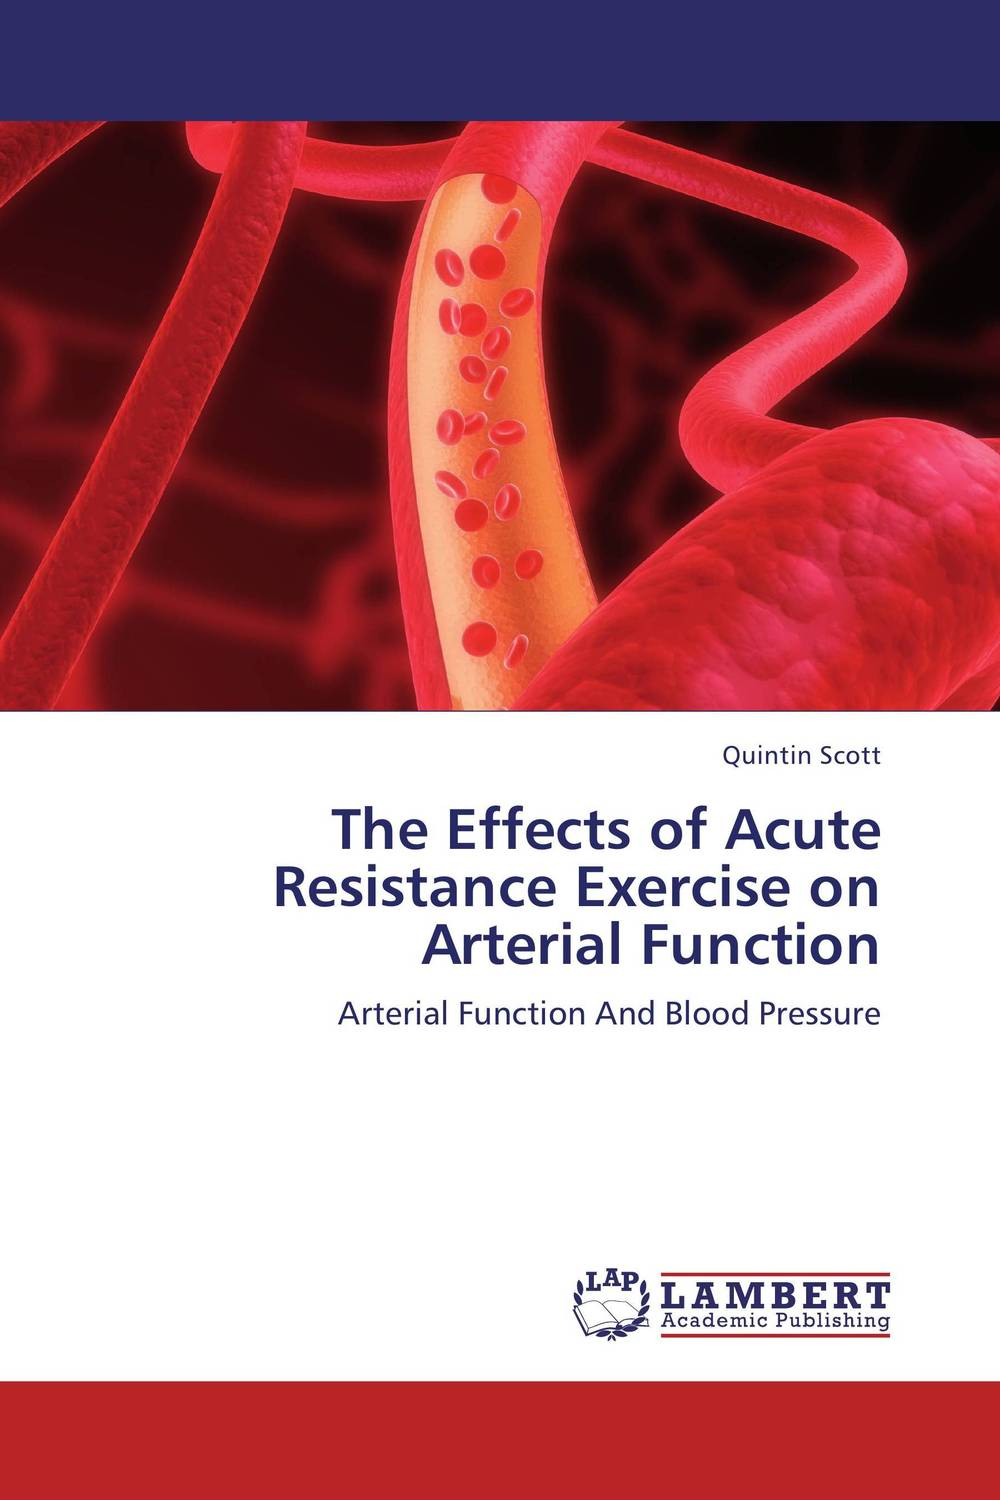 The Effects of Acute Resistance Exercise on Arterial Function exercise effects on morphine